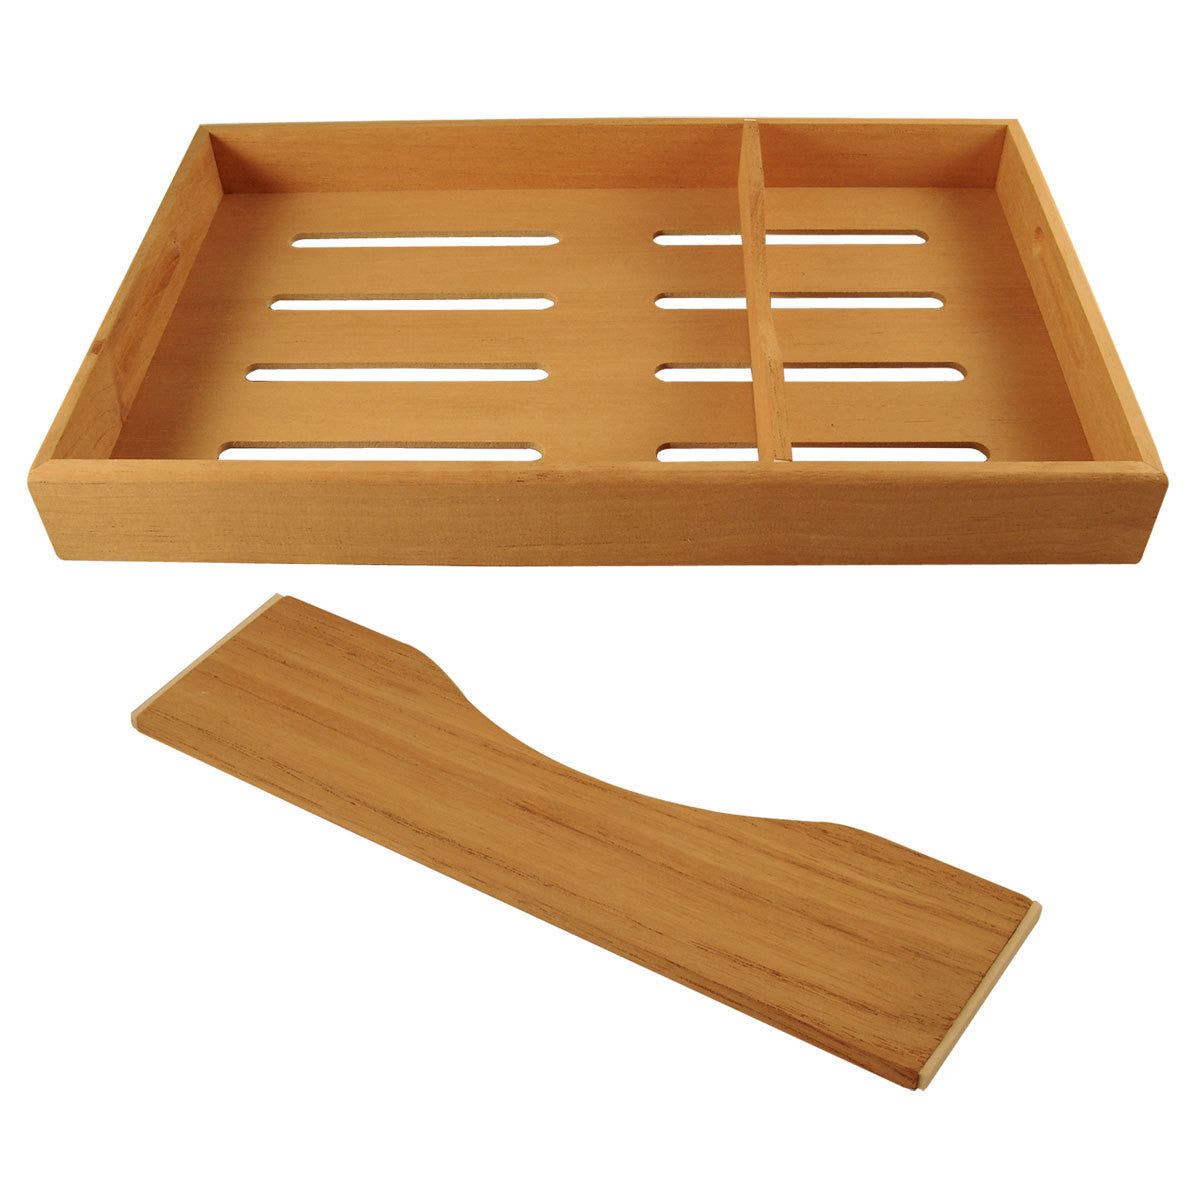 Top Tray Divider for Cuban Elegance Humidor - Humidors Wholesaler